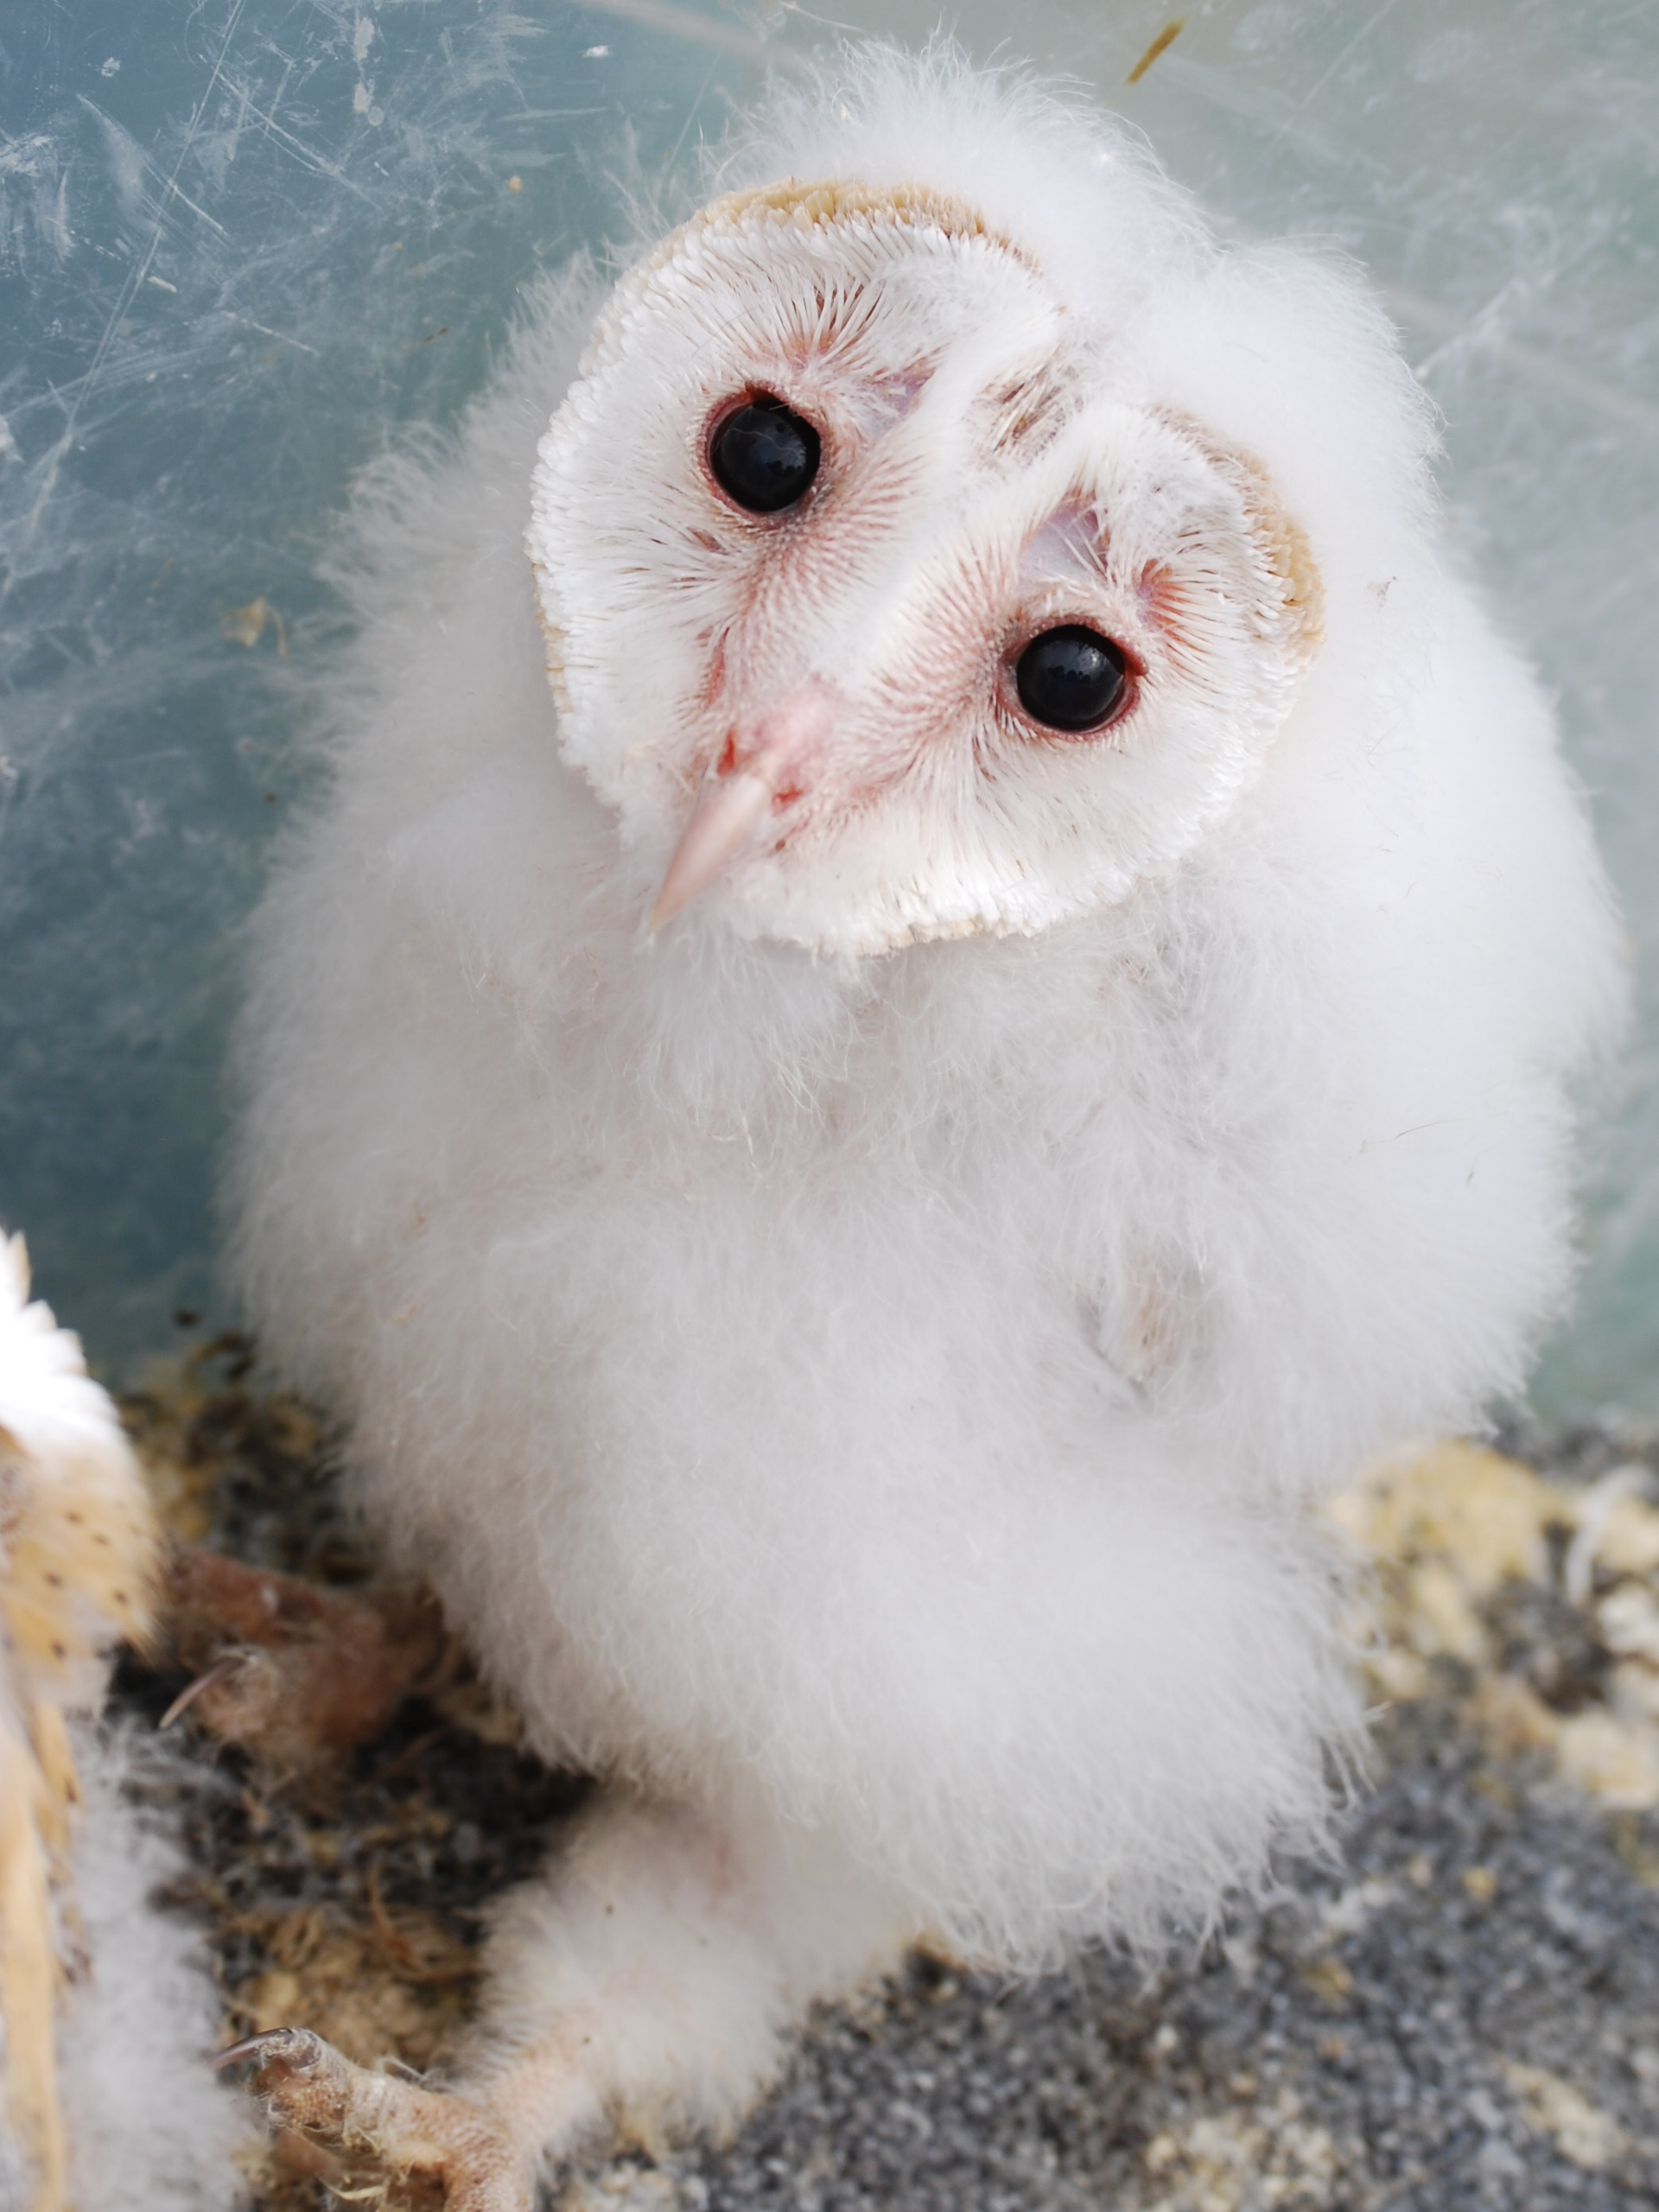 Baby barn owl images - photo#3